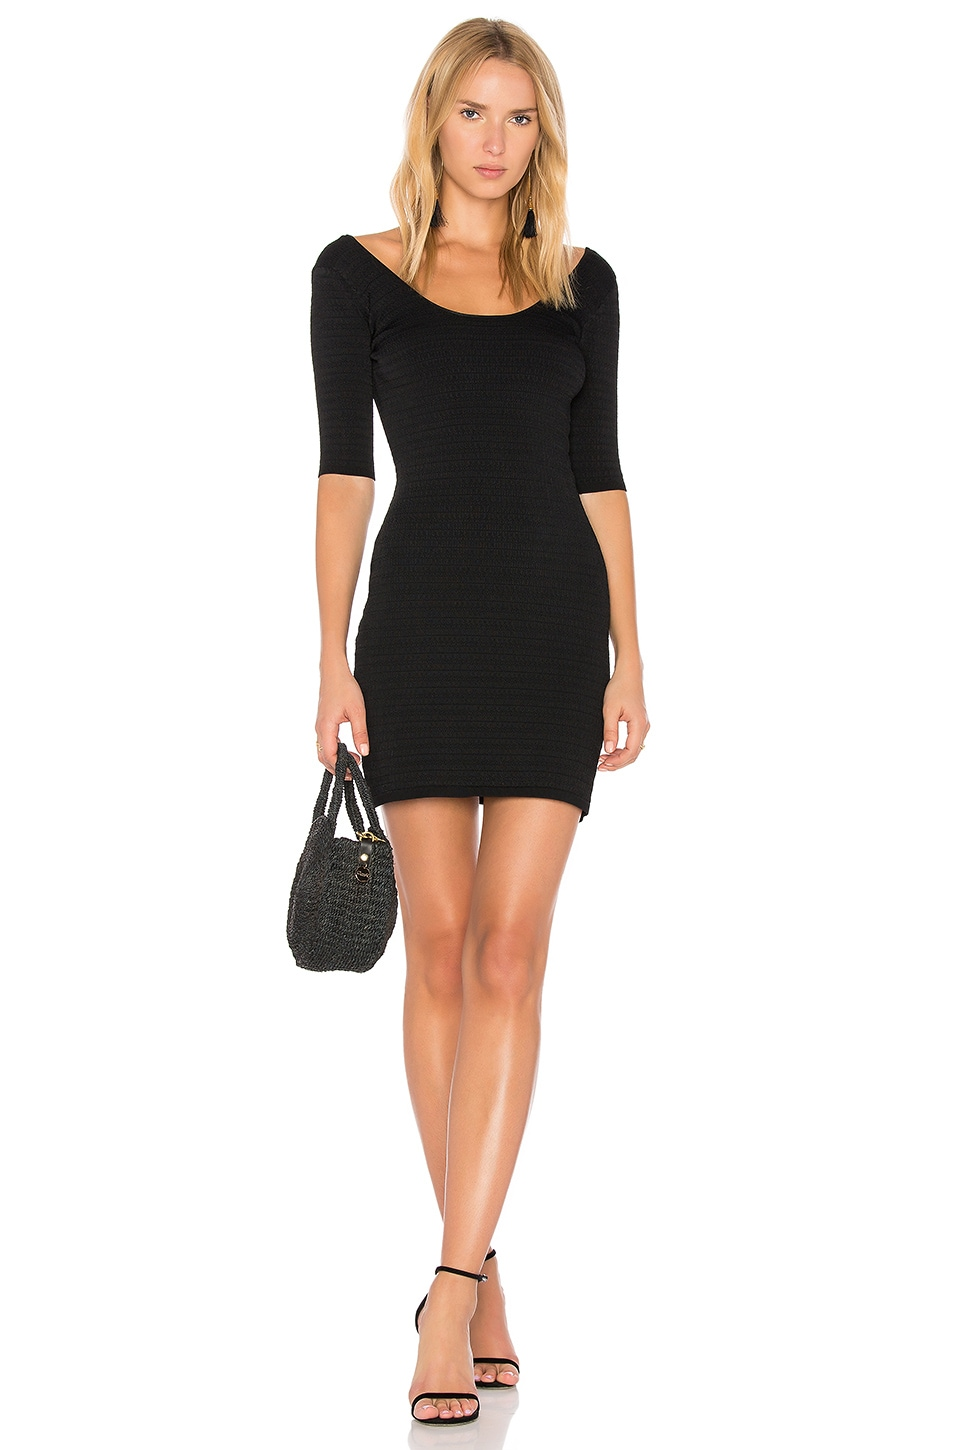 Elizabeth and James Lydia Scoop Back Mini Dress in Black